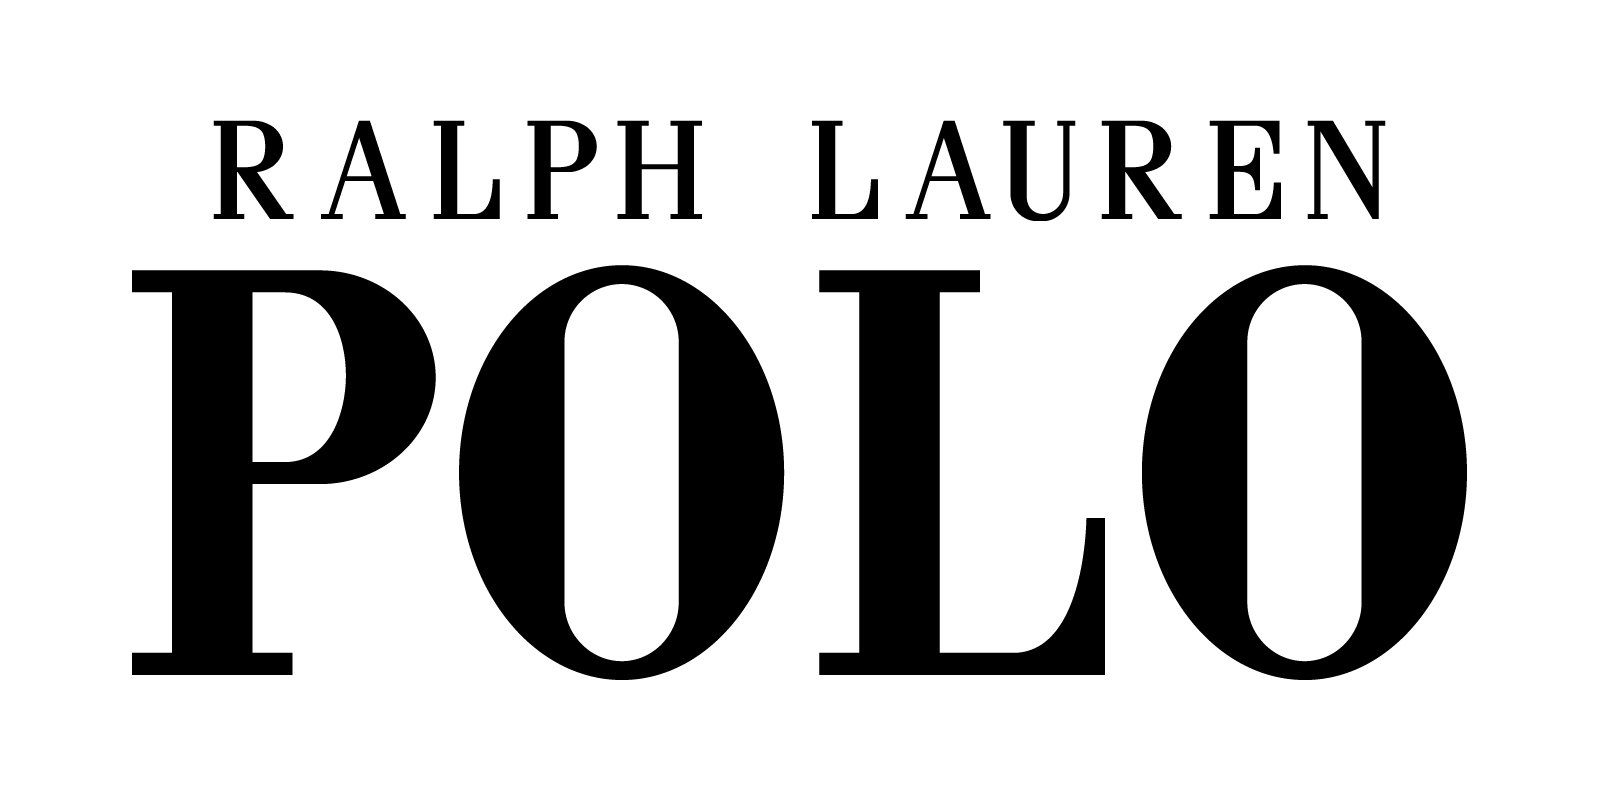 Ralph Lauren Logo Ralph Lauren Symbol Meaning History And Evolution